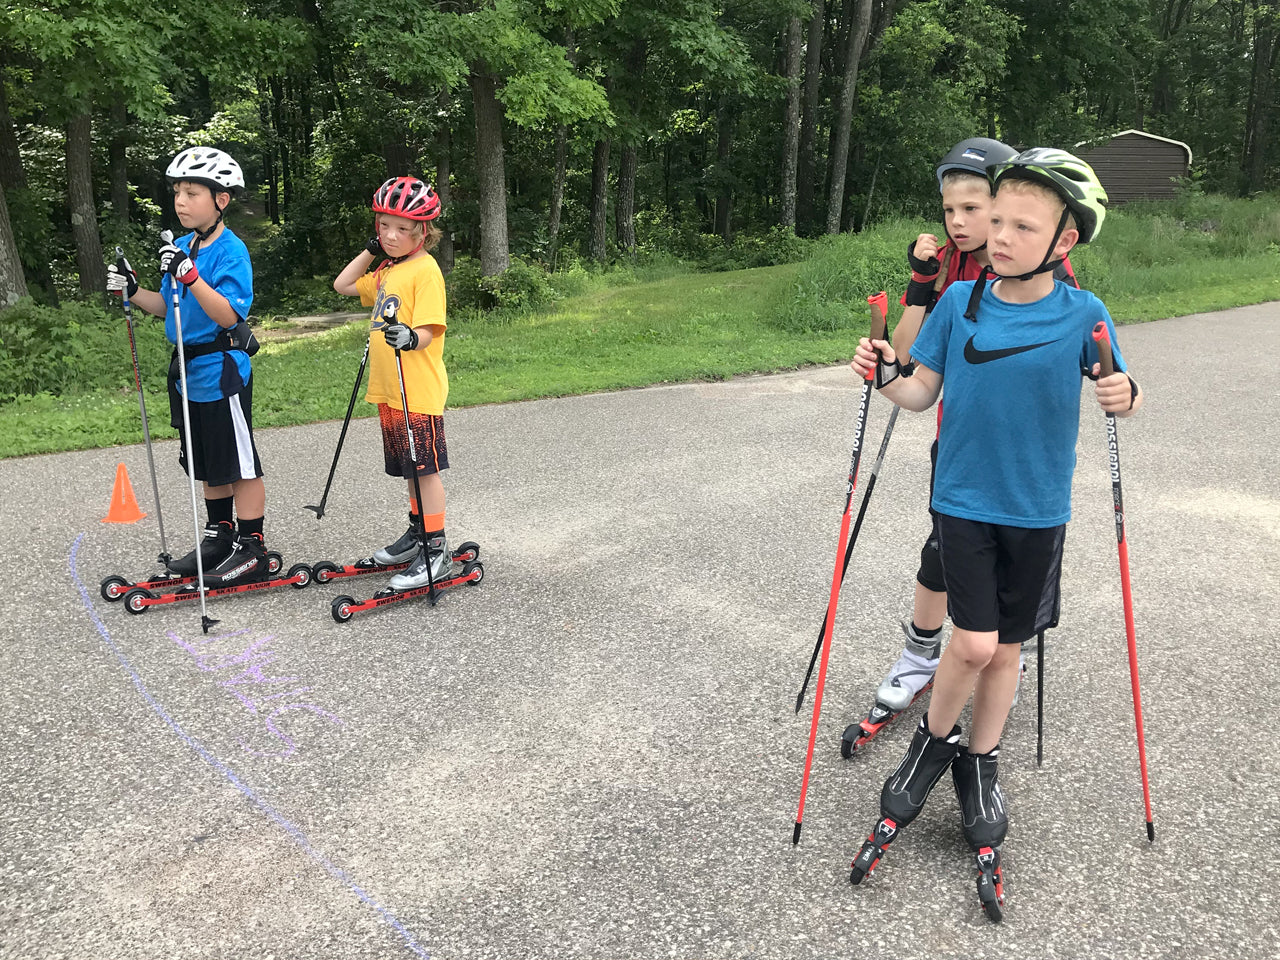 SWENOR Junior Rollerski Package